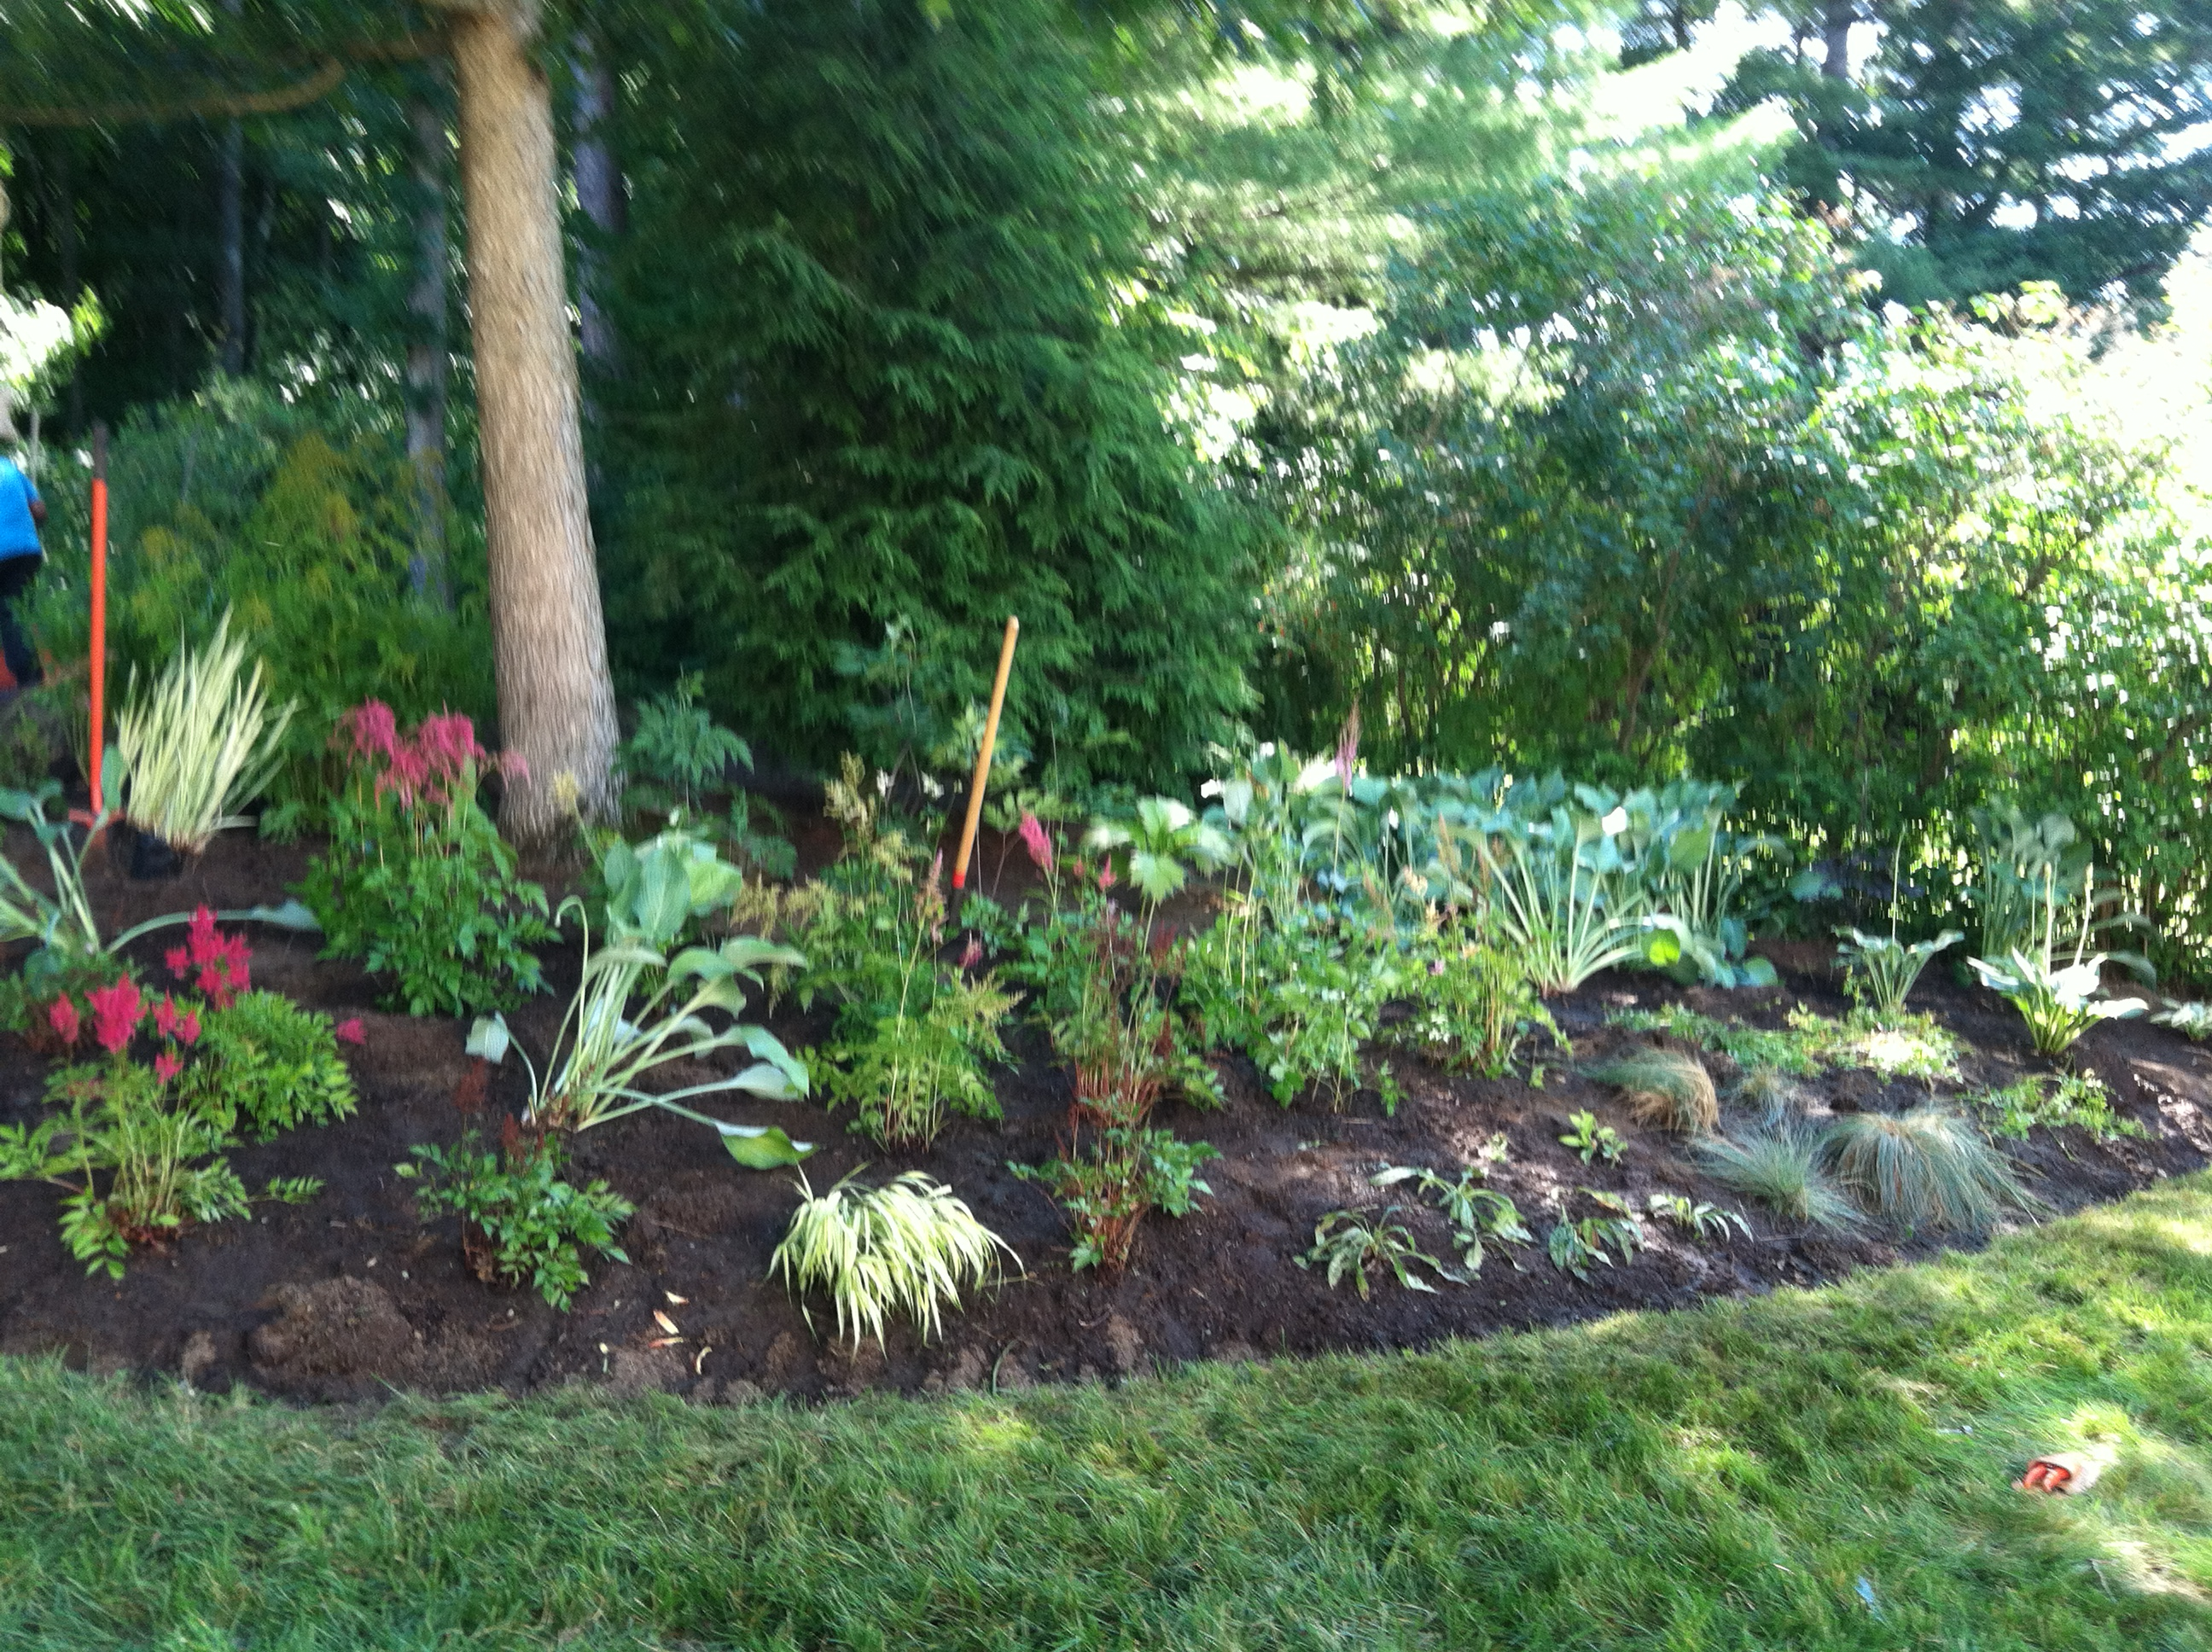 Perennials dug out and divided, beds weeded and tilled, plants re-installed with new spacing and design